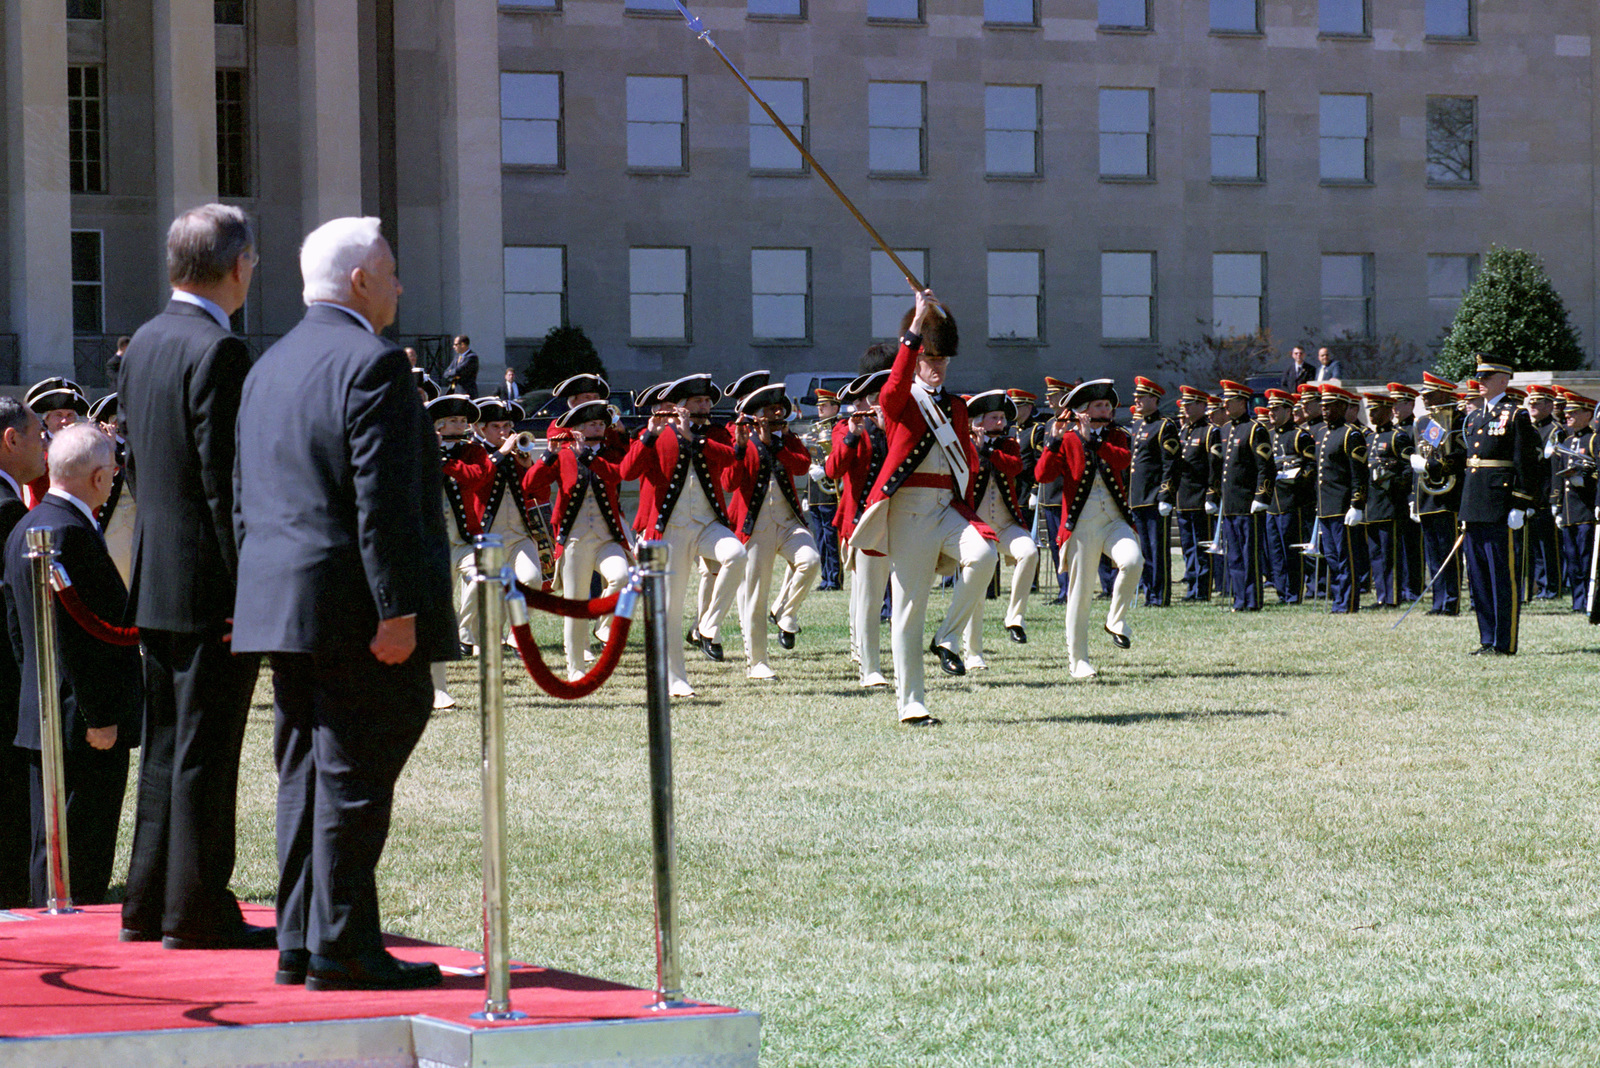 The Honorable Donald H. Rumsfeld, U.S. Secretary of Defense, stands to the left of Ariel Sharon, Israeli Prime Minister, on the reviewing stand at the River Parade Field, Pentagon, Washington, D.C., Mar. 19, 2001, as the U.S. Army's Old Guard Fife and Drum Corps marches to their front during the troop step and render honors'portion of the parade.  (DoD photo by Robert D. Ward) (Released)